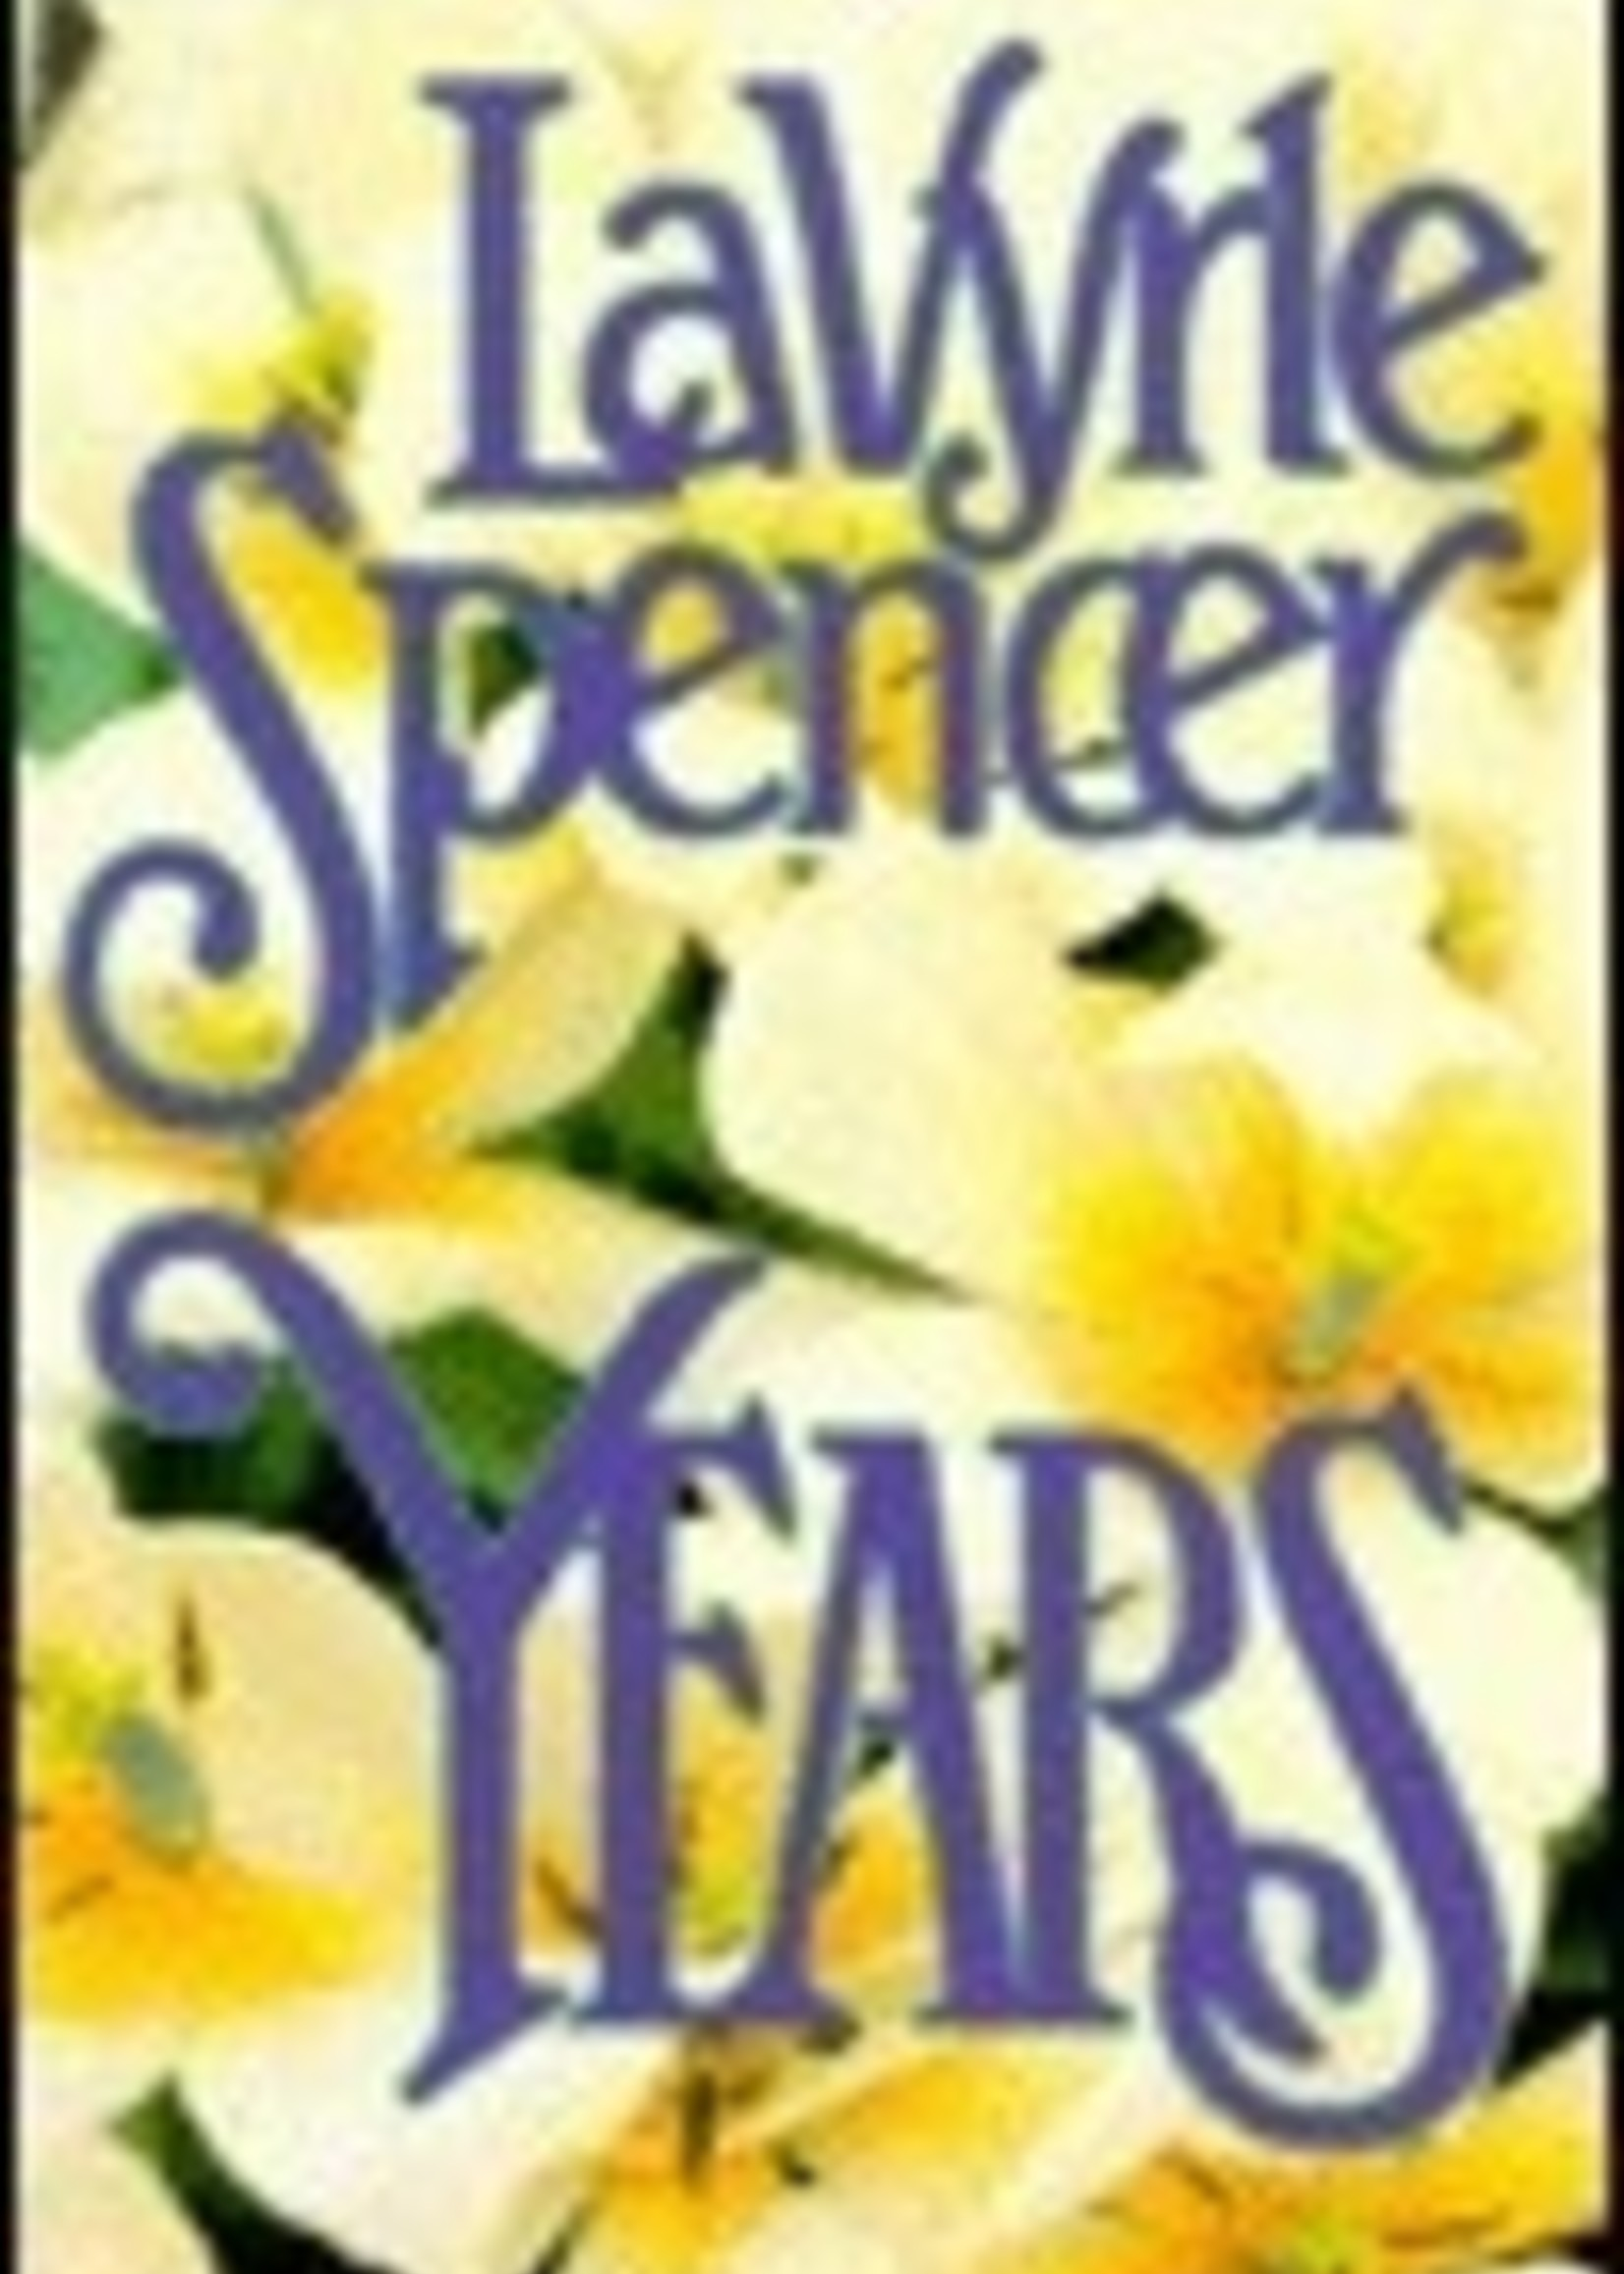 USED - Years by LaVyrle Spencer